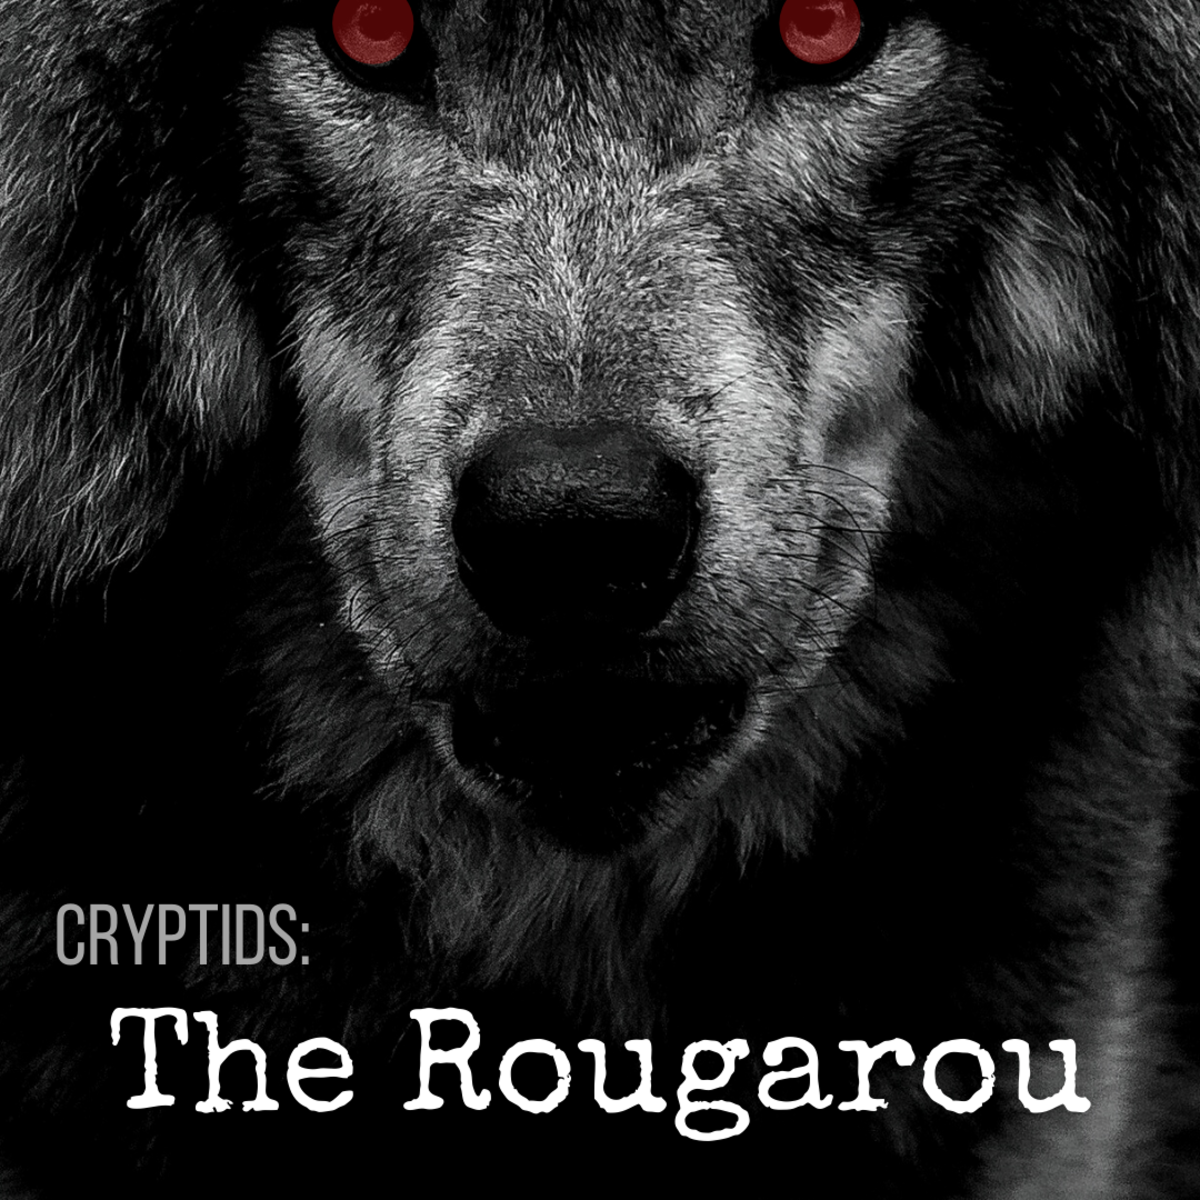 Discover Louisiana's legendary werewolf: the Rougarou.